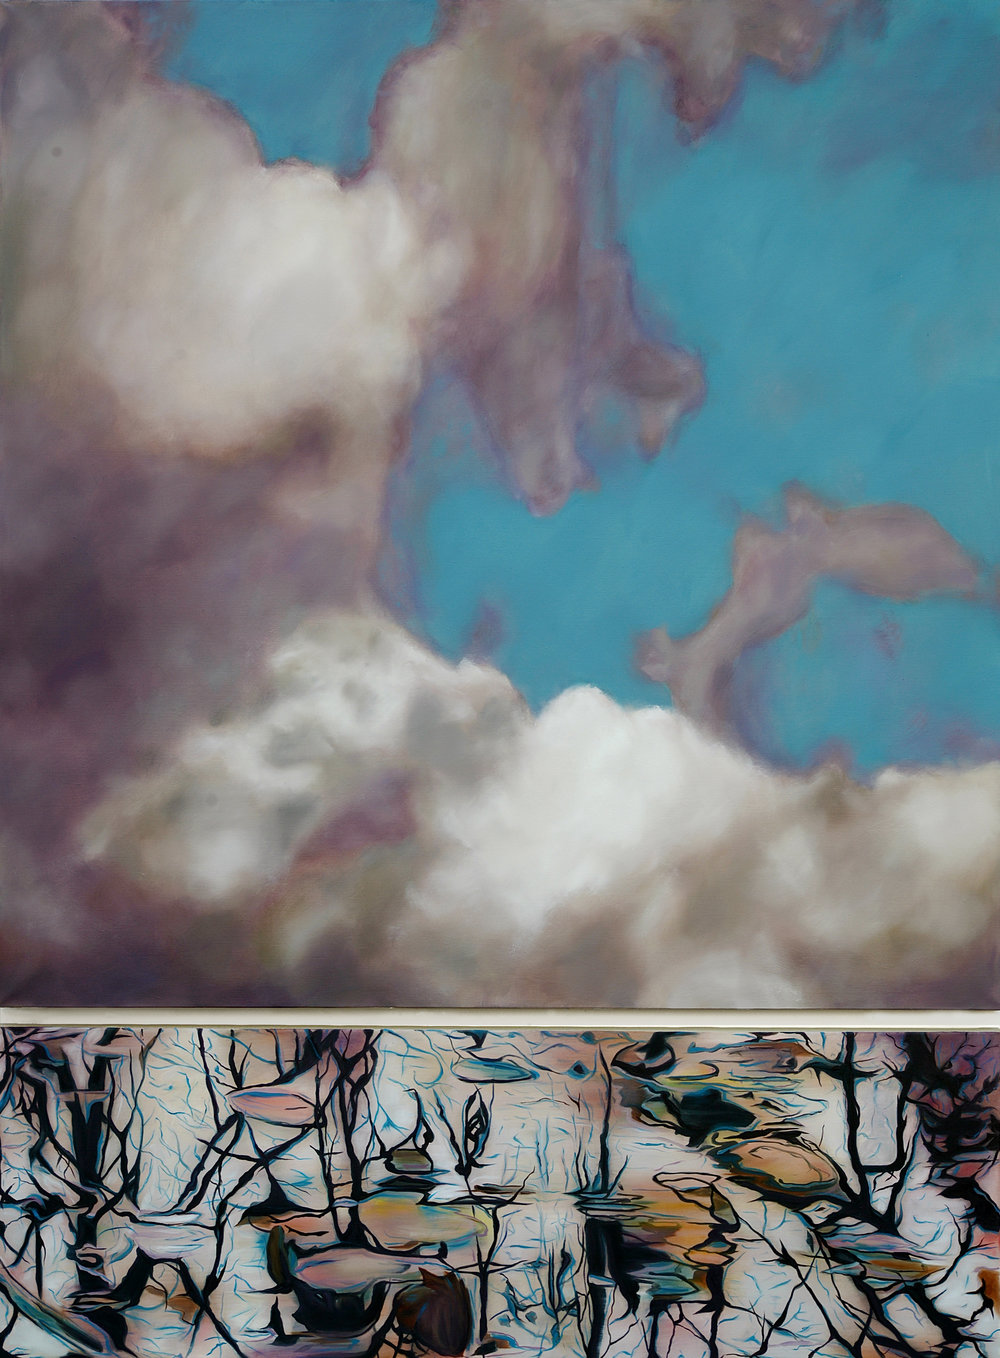 Elévation,  2016  oil on linen, diptych, 84 x 63 in, 213 x 160 cm